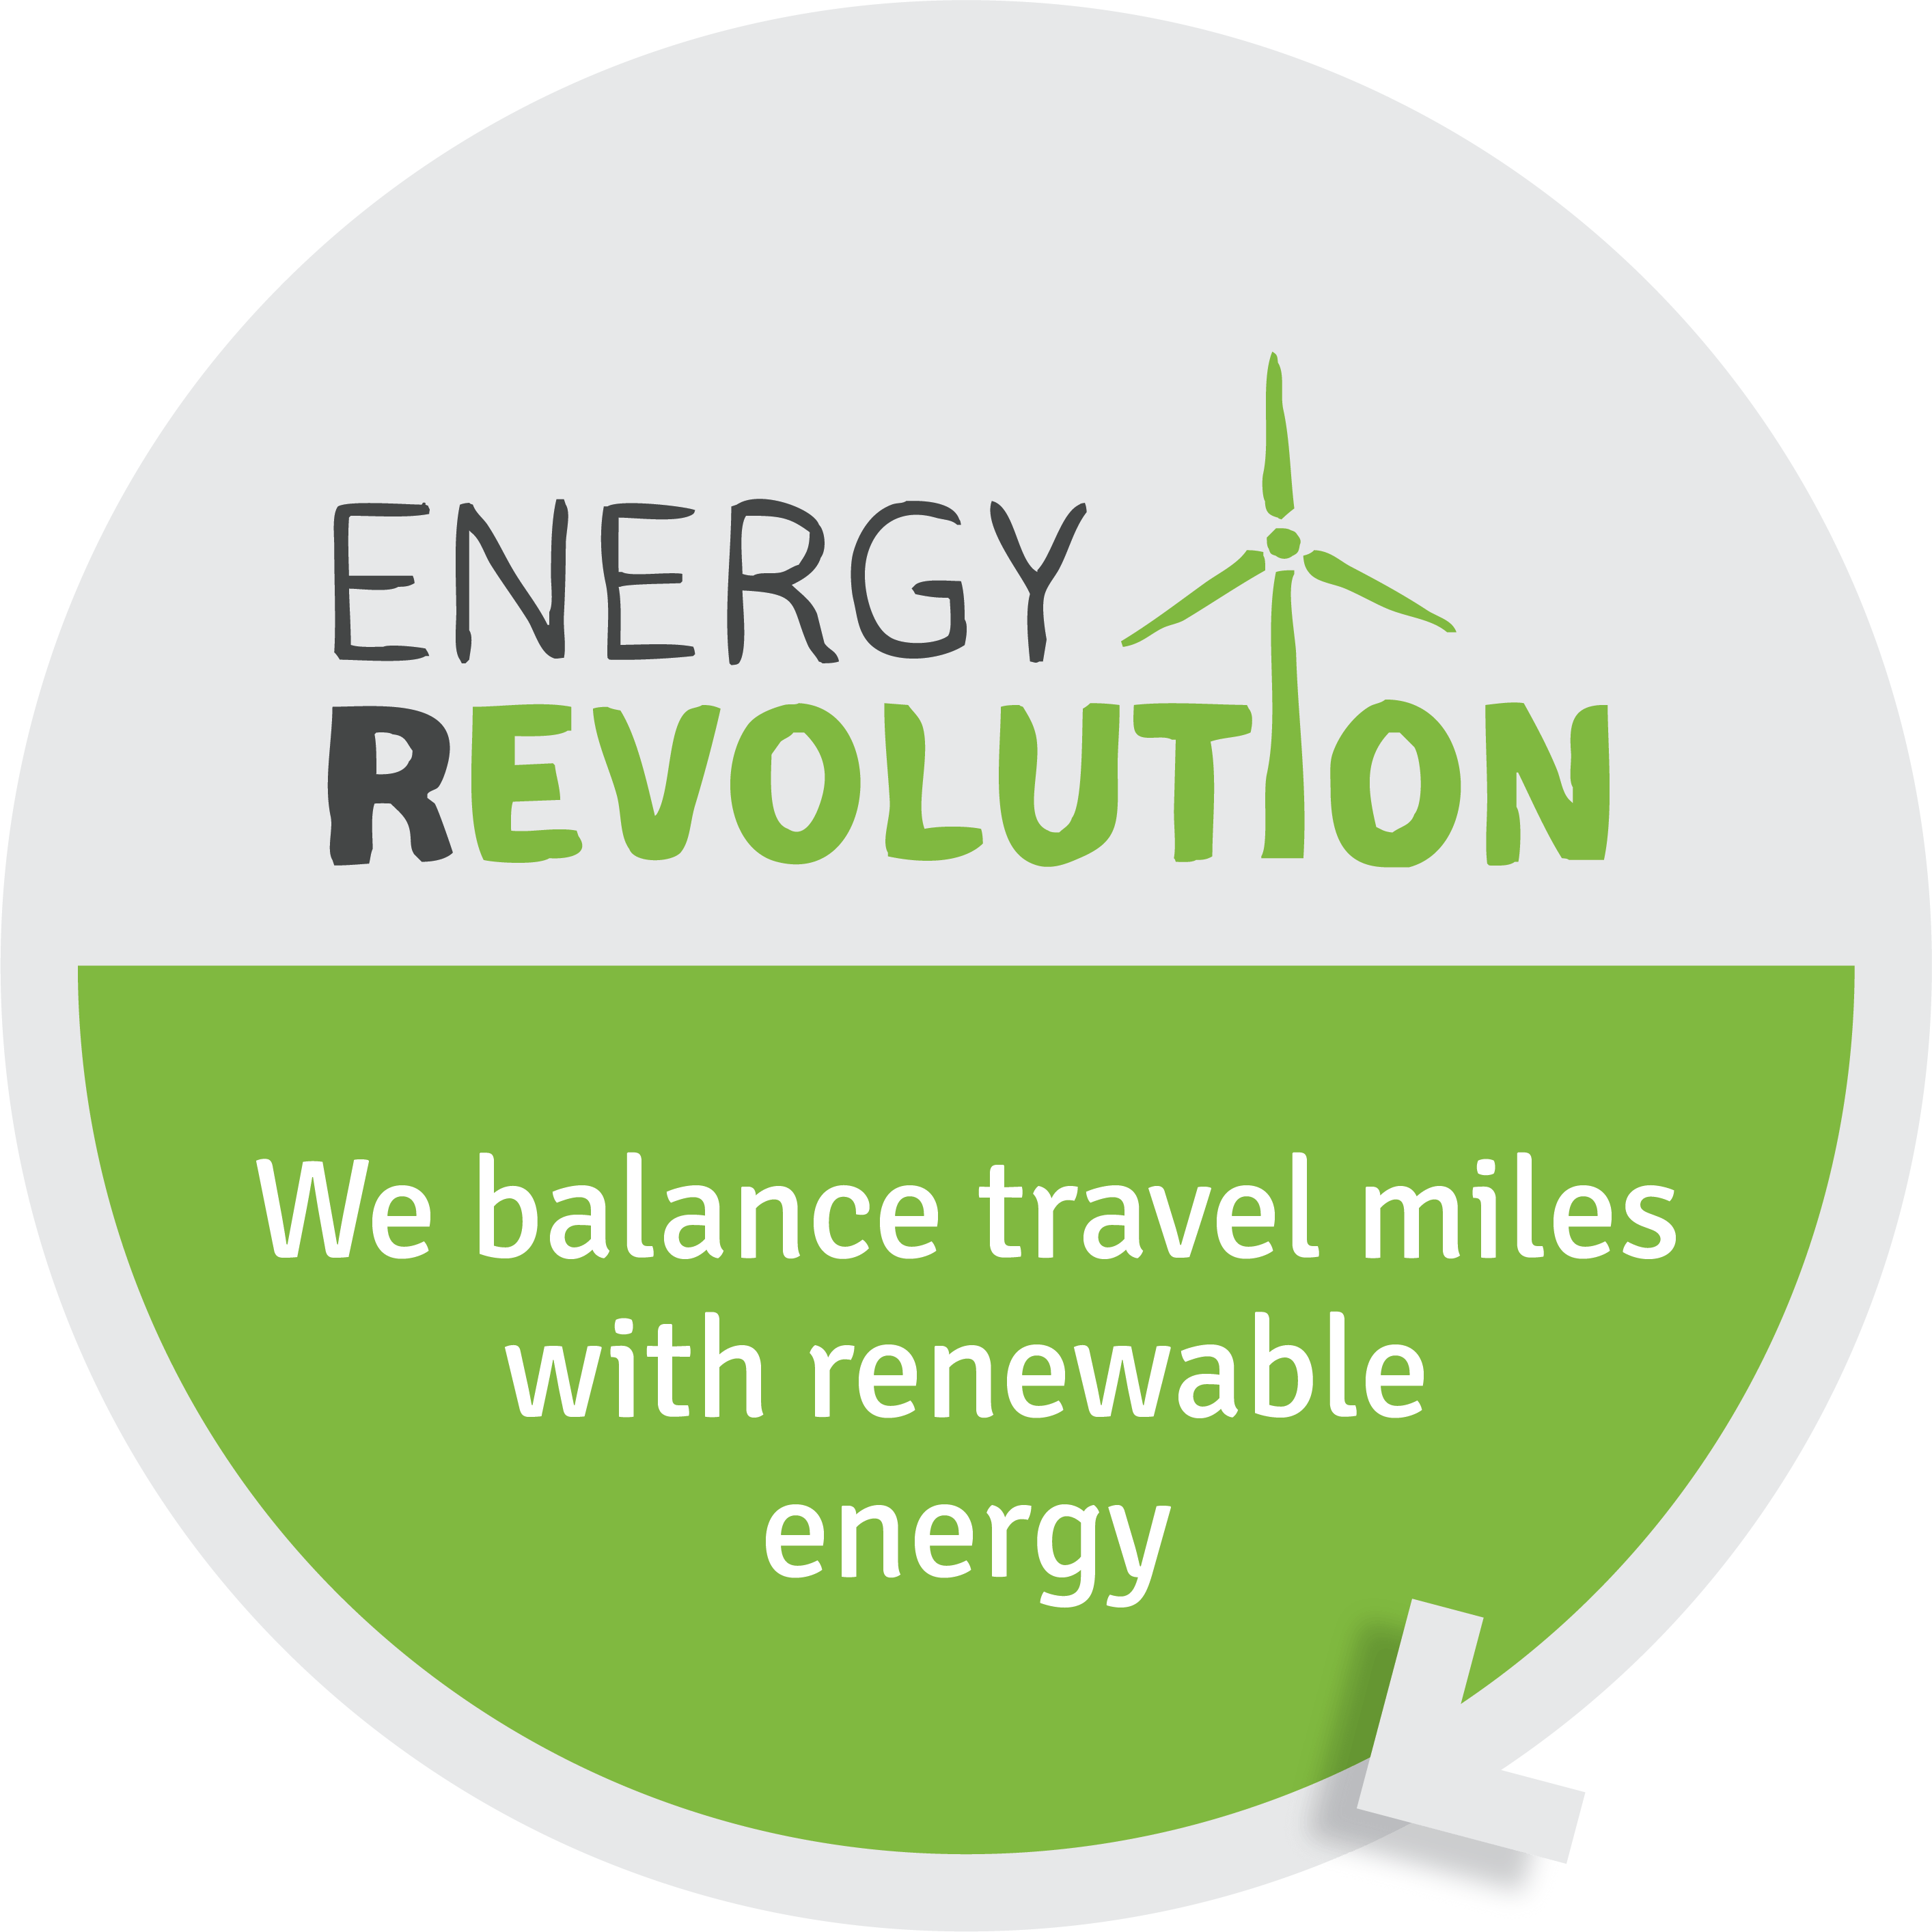 Energy Revolution - Movement for change